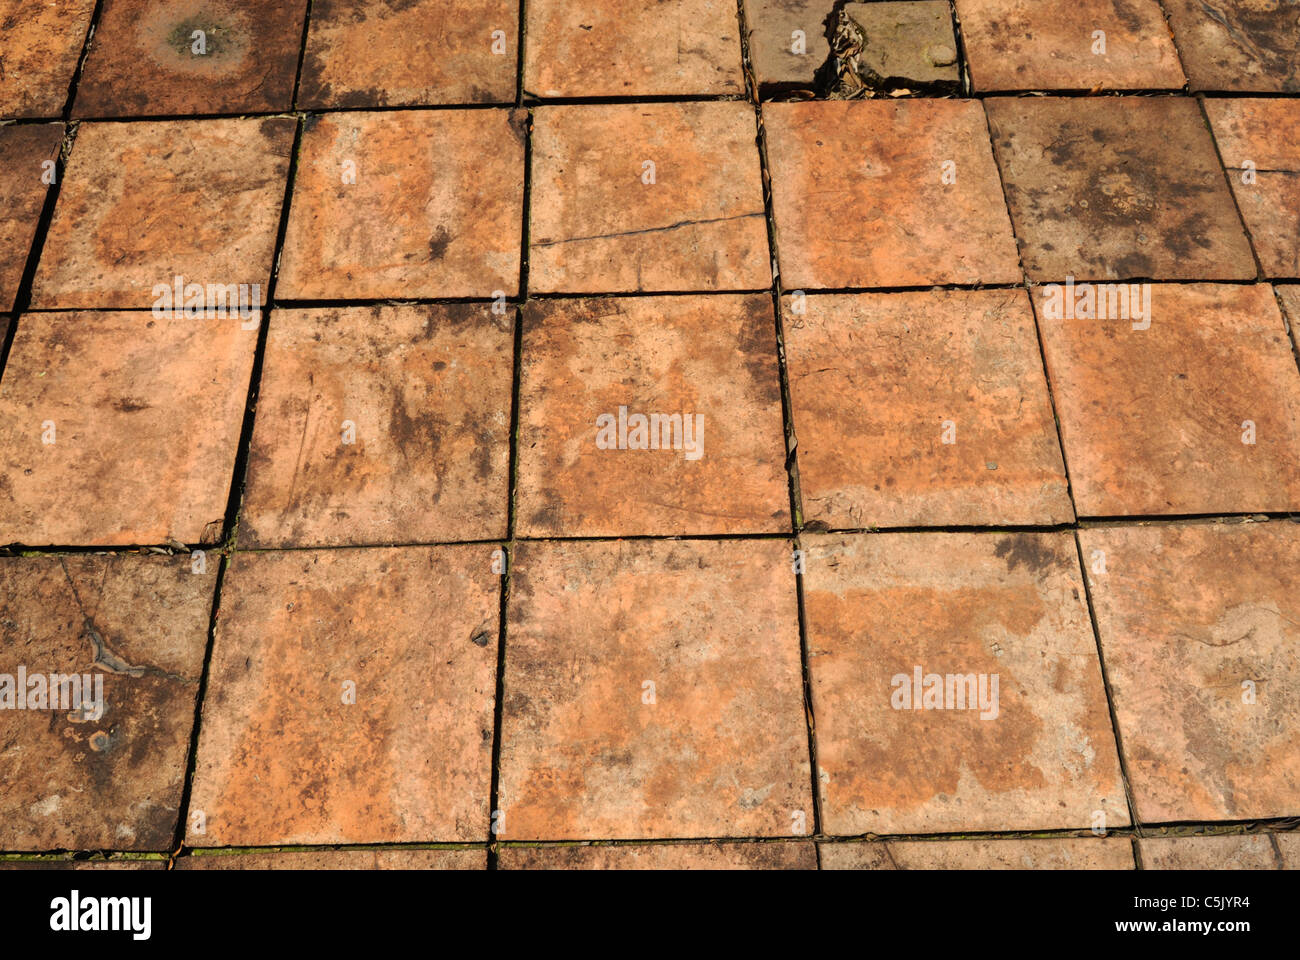 Asia vietnam hue floor tiles in the forecourt of the royal tomb floor tiles in the forecourt of the royal tomb of thieu tri designated a unesco world heritage site in dailygadgetfo Gallery